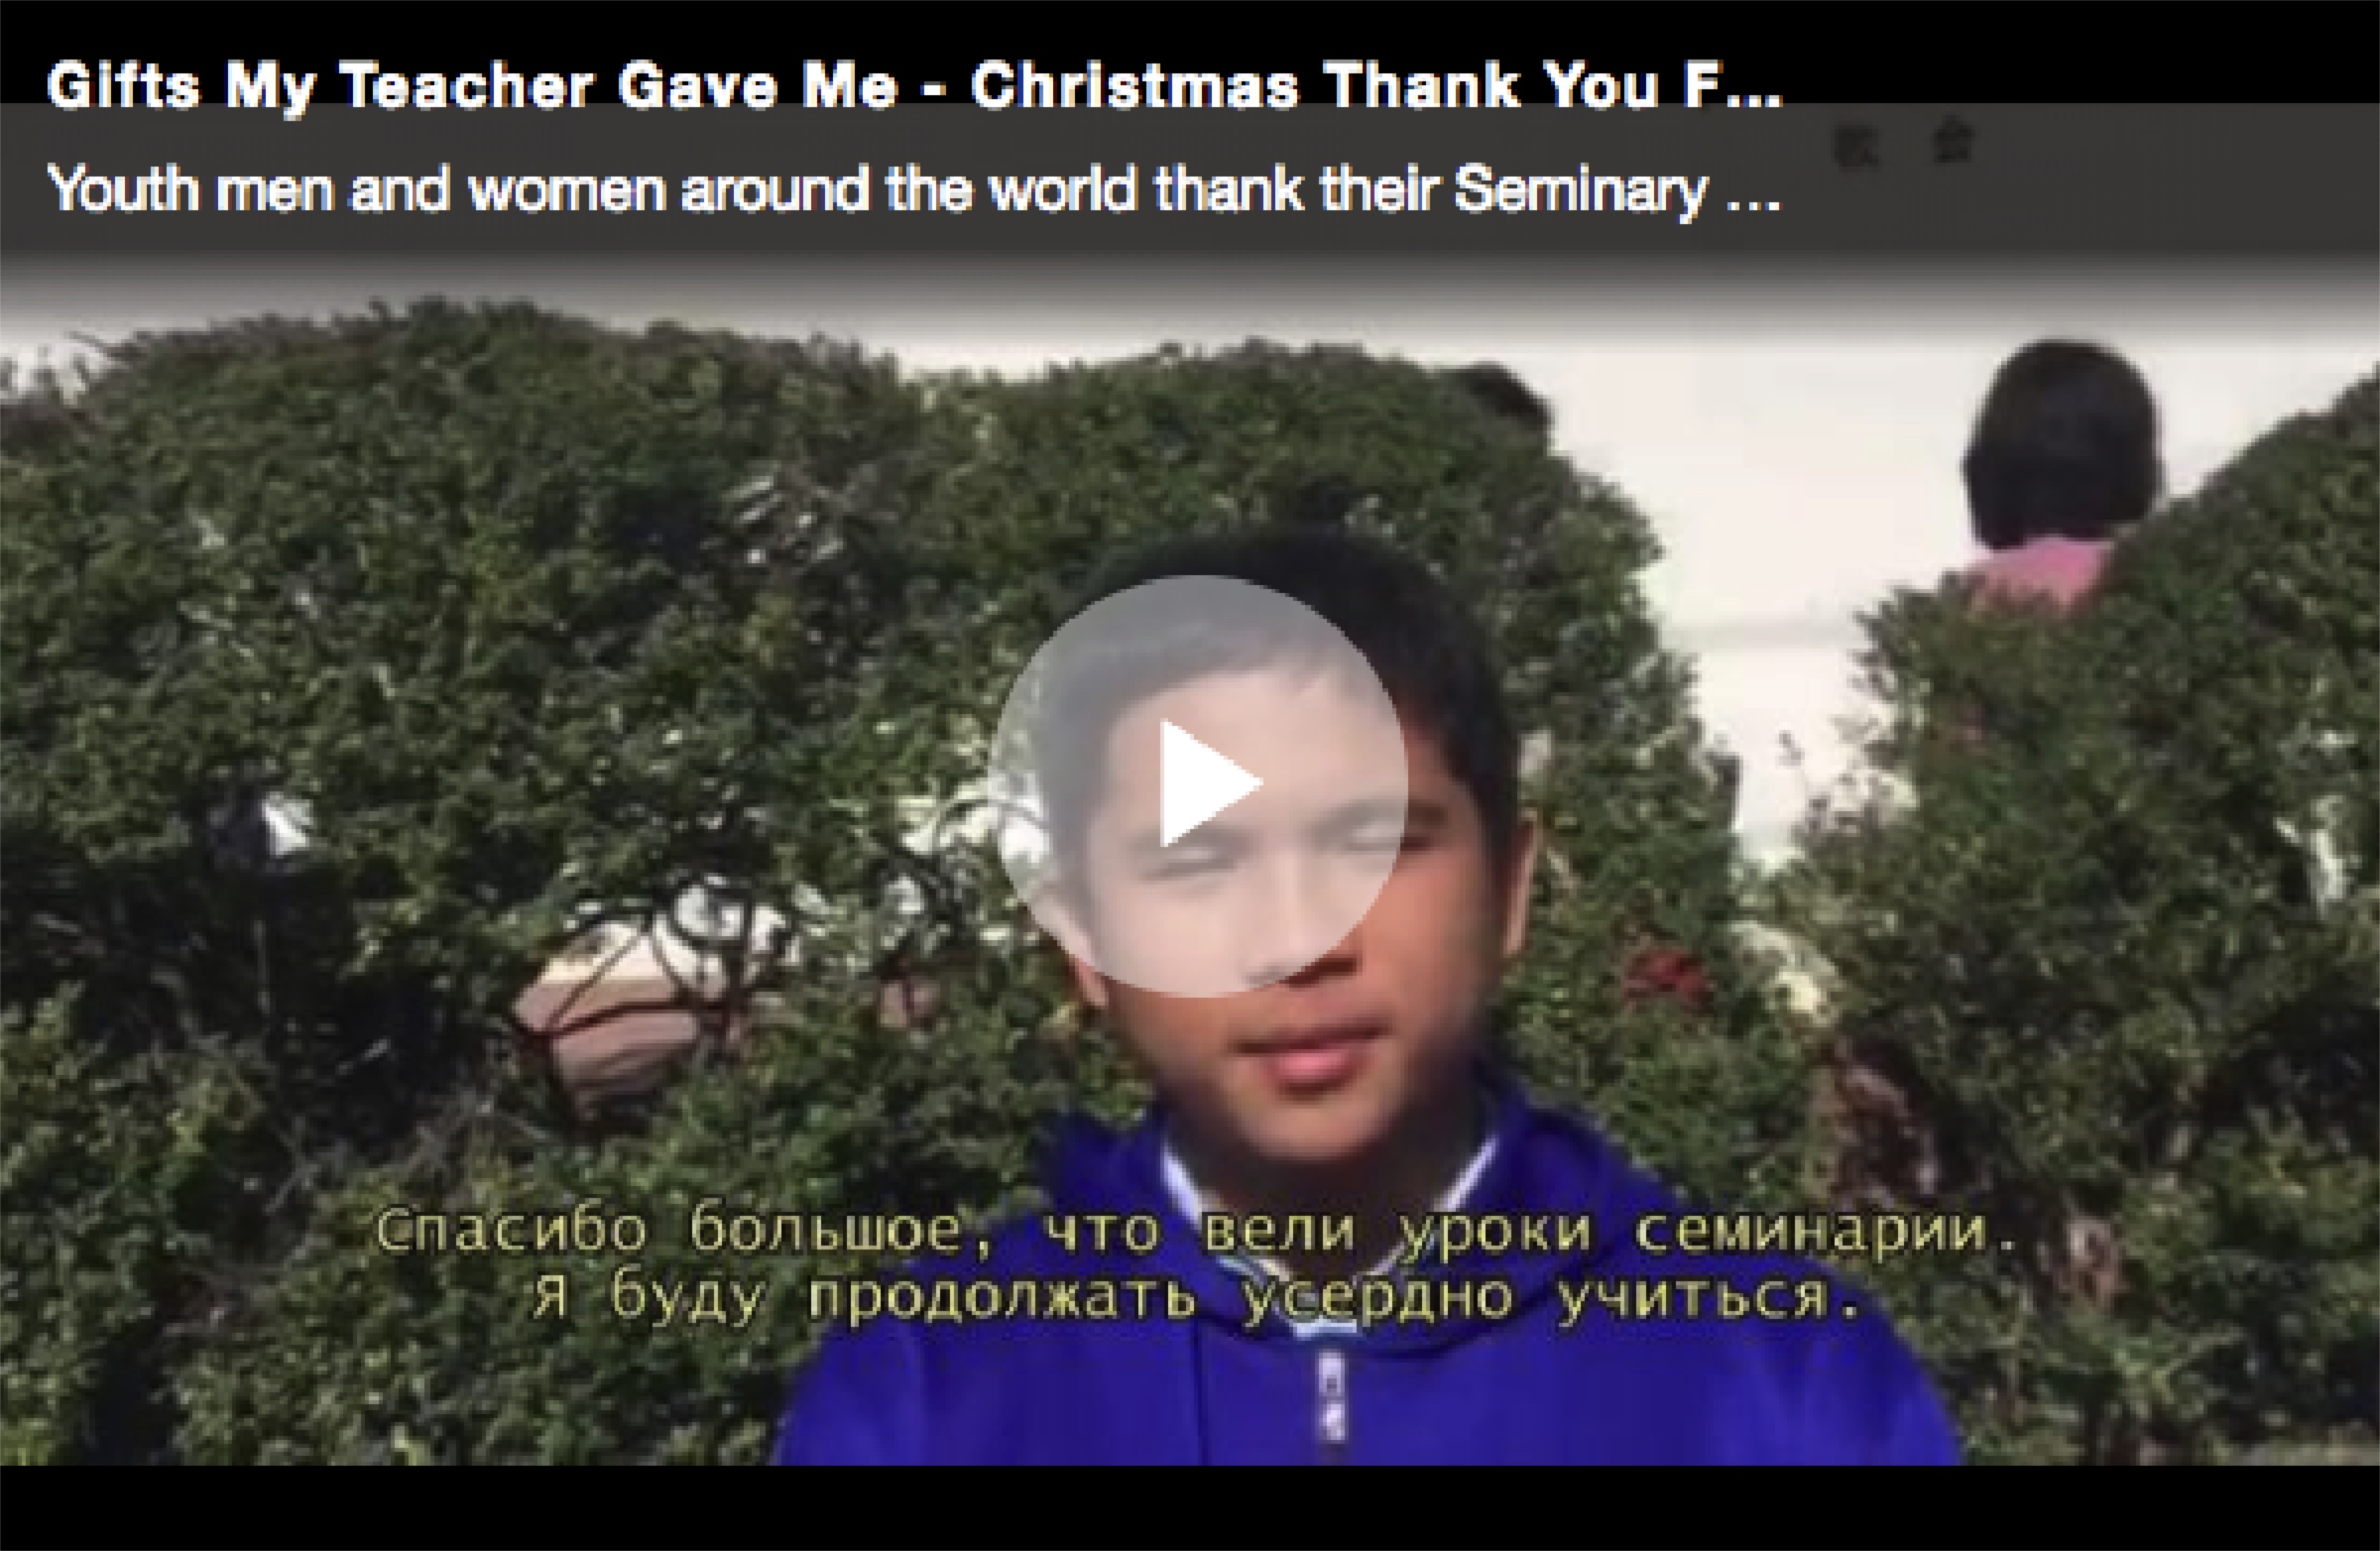 A Heartfelt Thank-You from Your Students